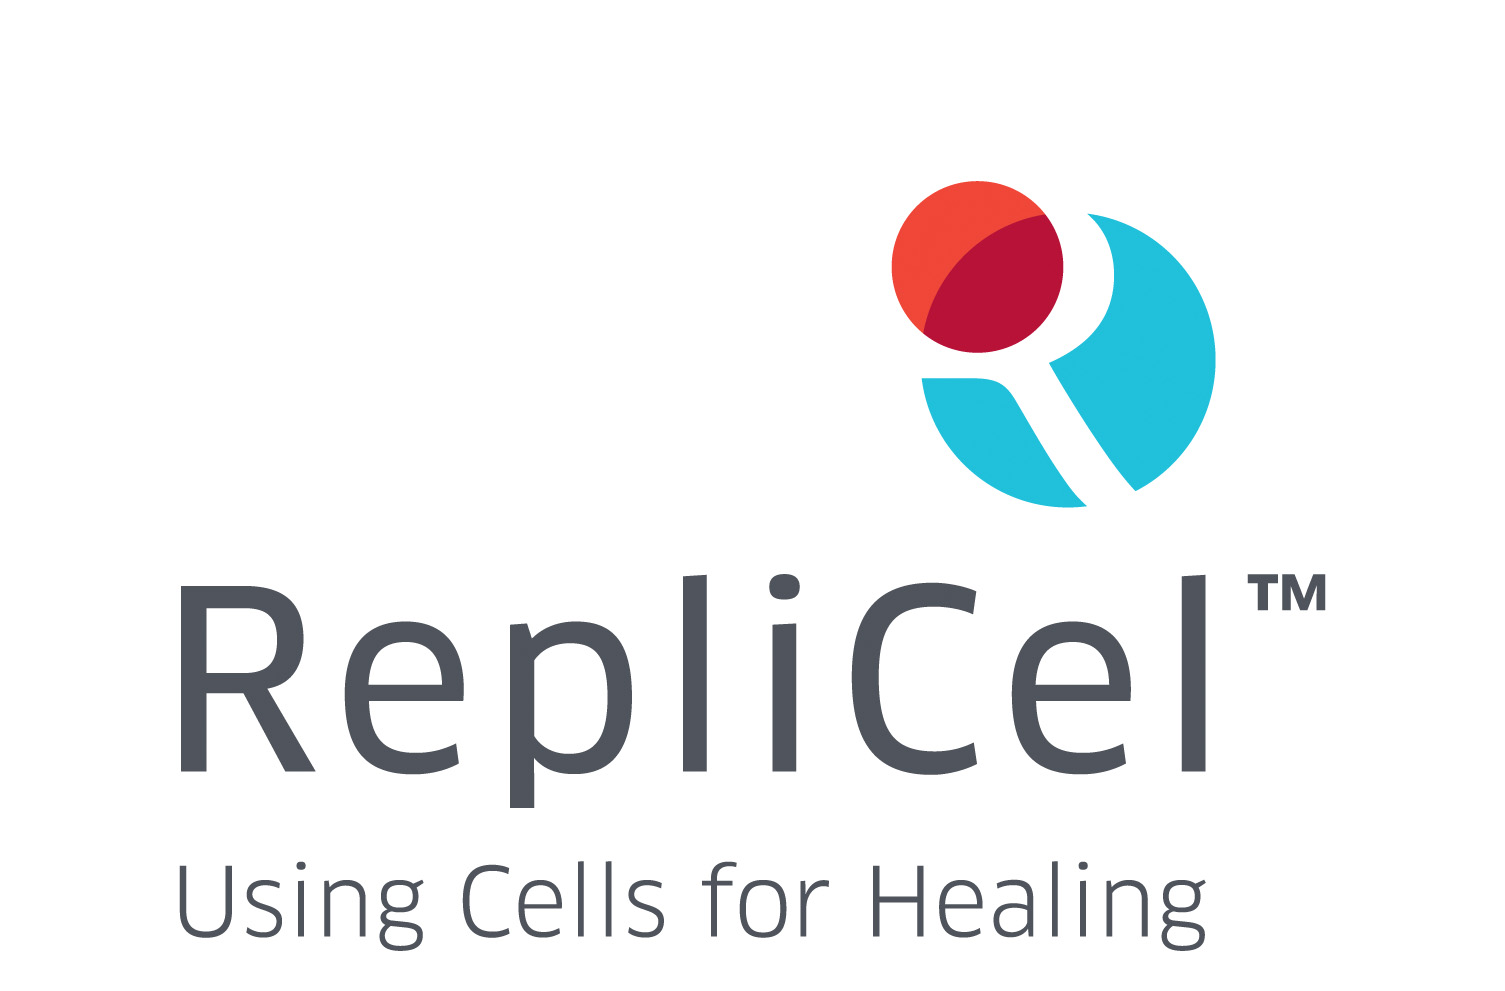 RepliCel Presents Its Technology Development and Commercialization Plans for Japan at Kanagawa Regenerative Medicine Industry Conference